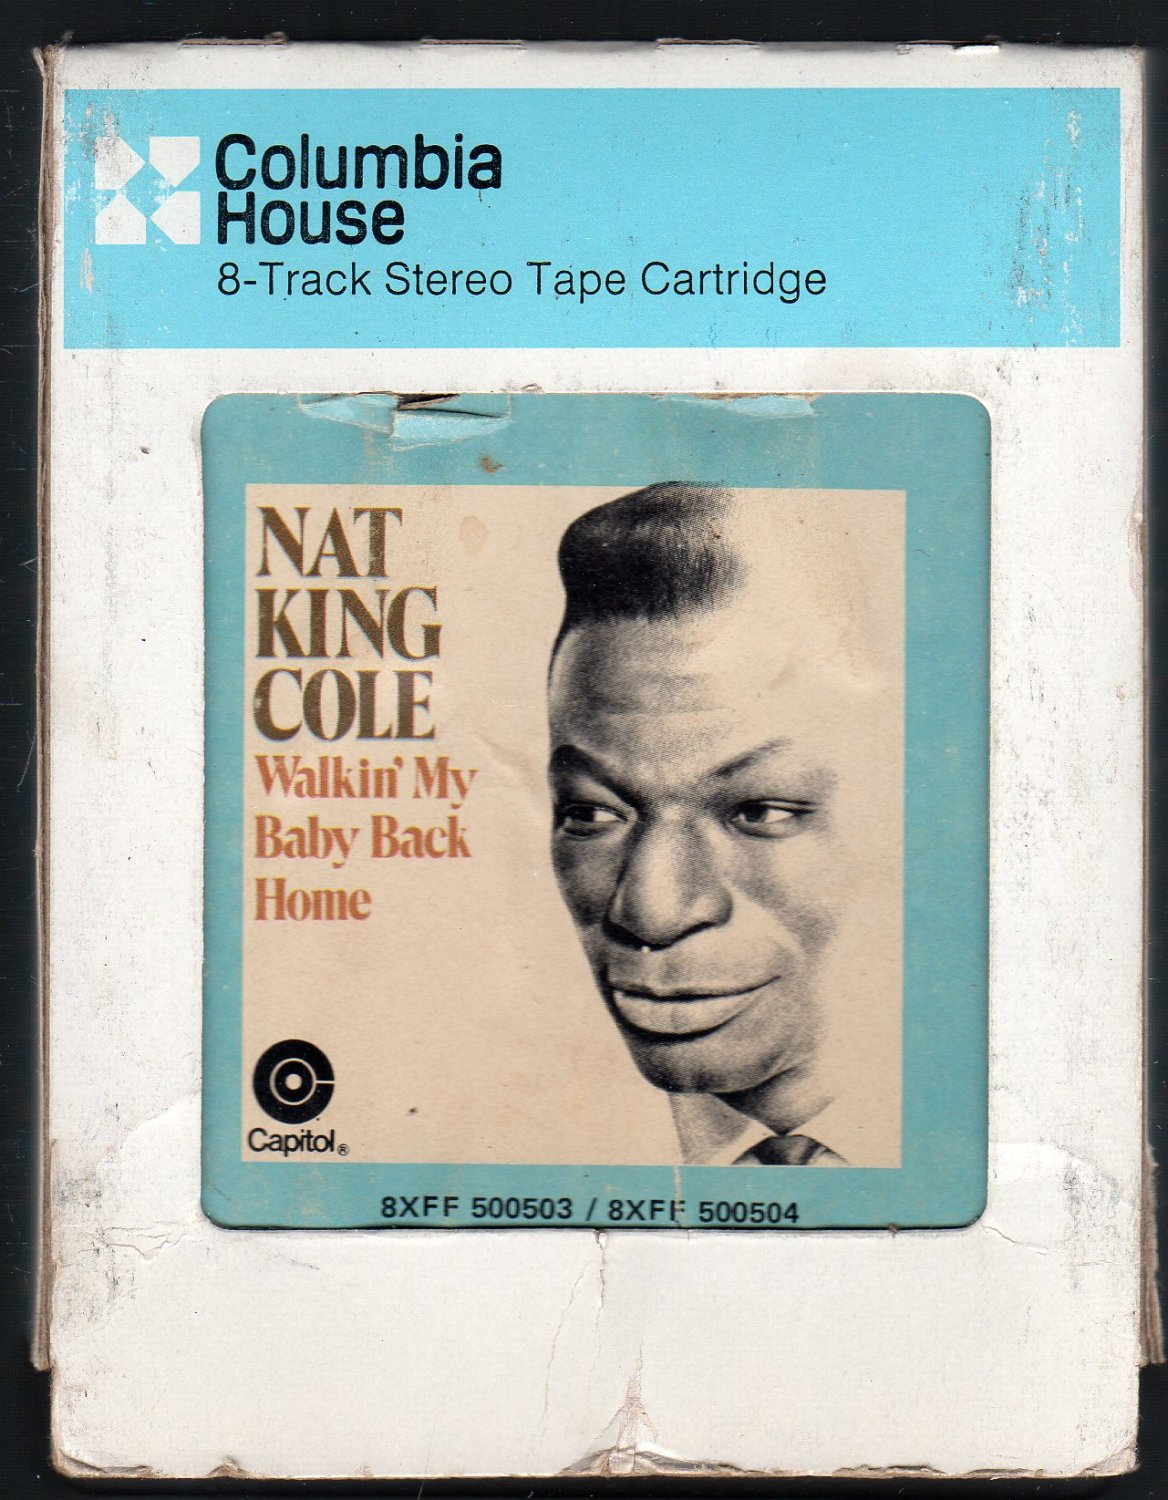 Nat King Cole - Walking My Baby Back Home CRC A52 8-track tape